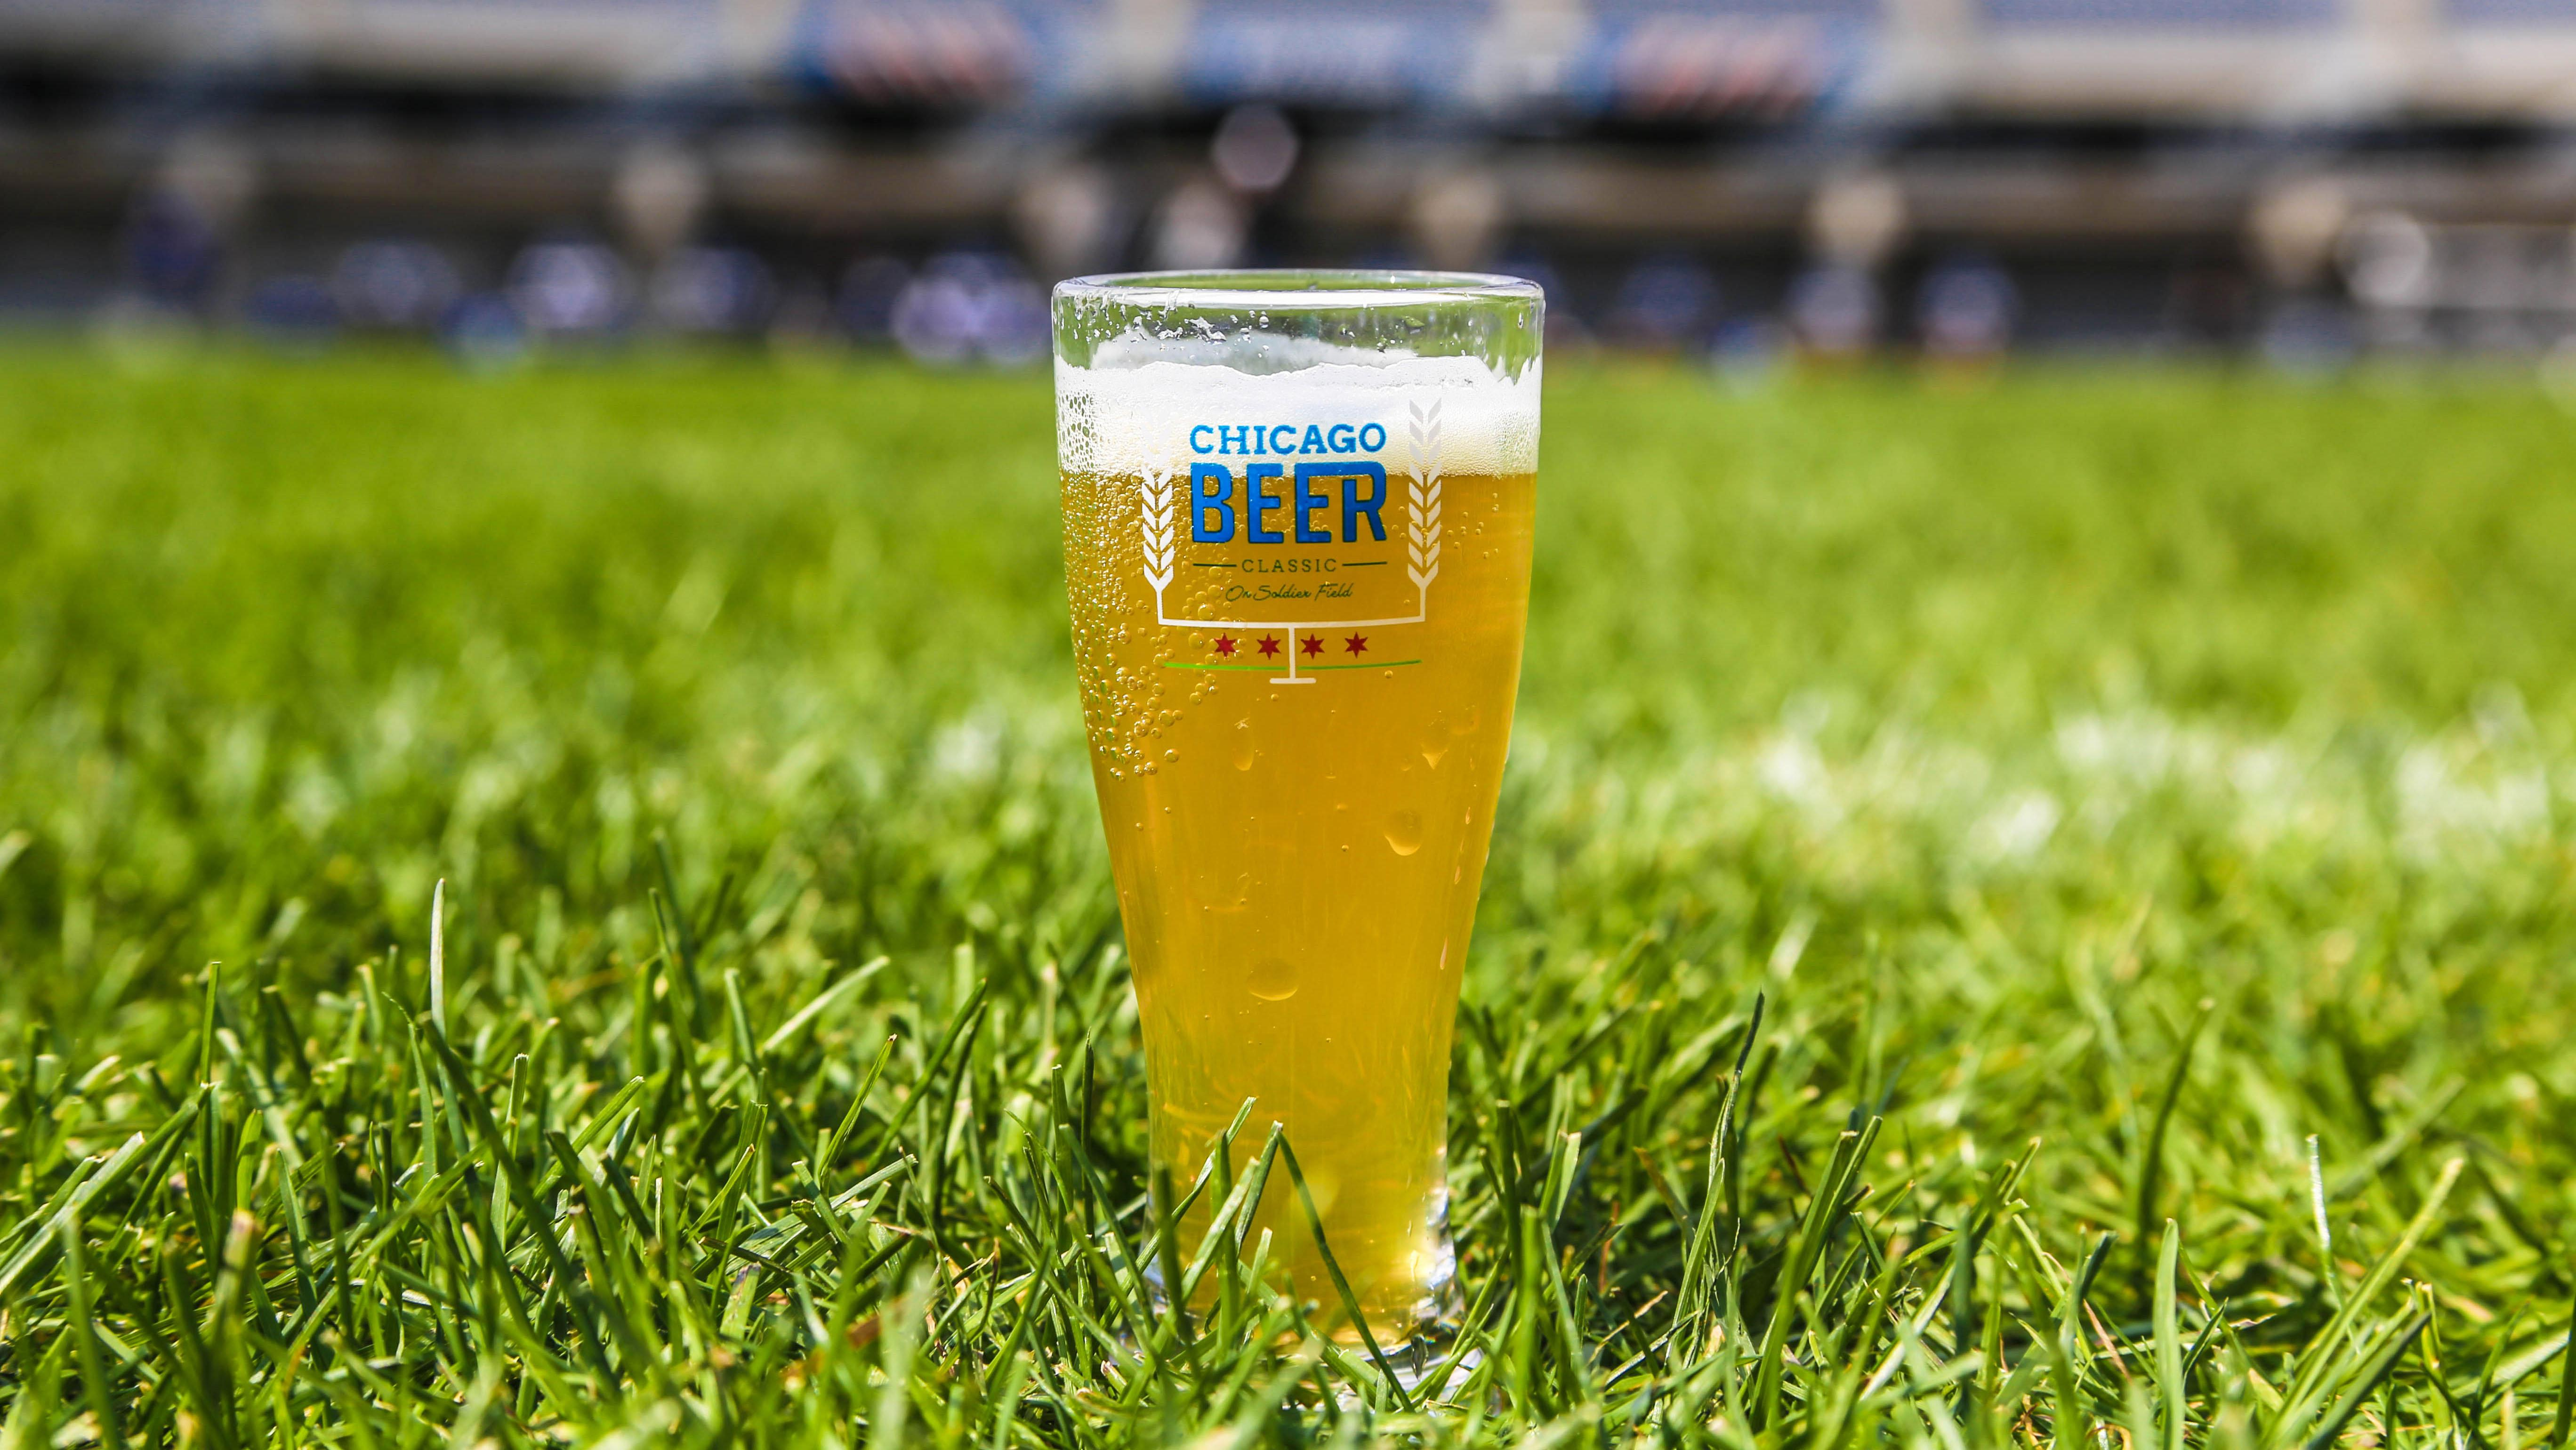 The Chicago Beer Classic hits Soldier Field this weekend. (Courtesy of Red Frog Events)